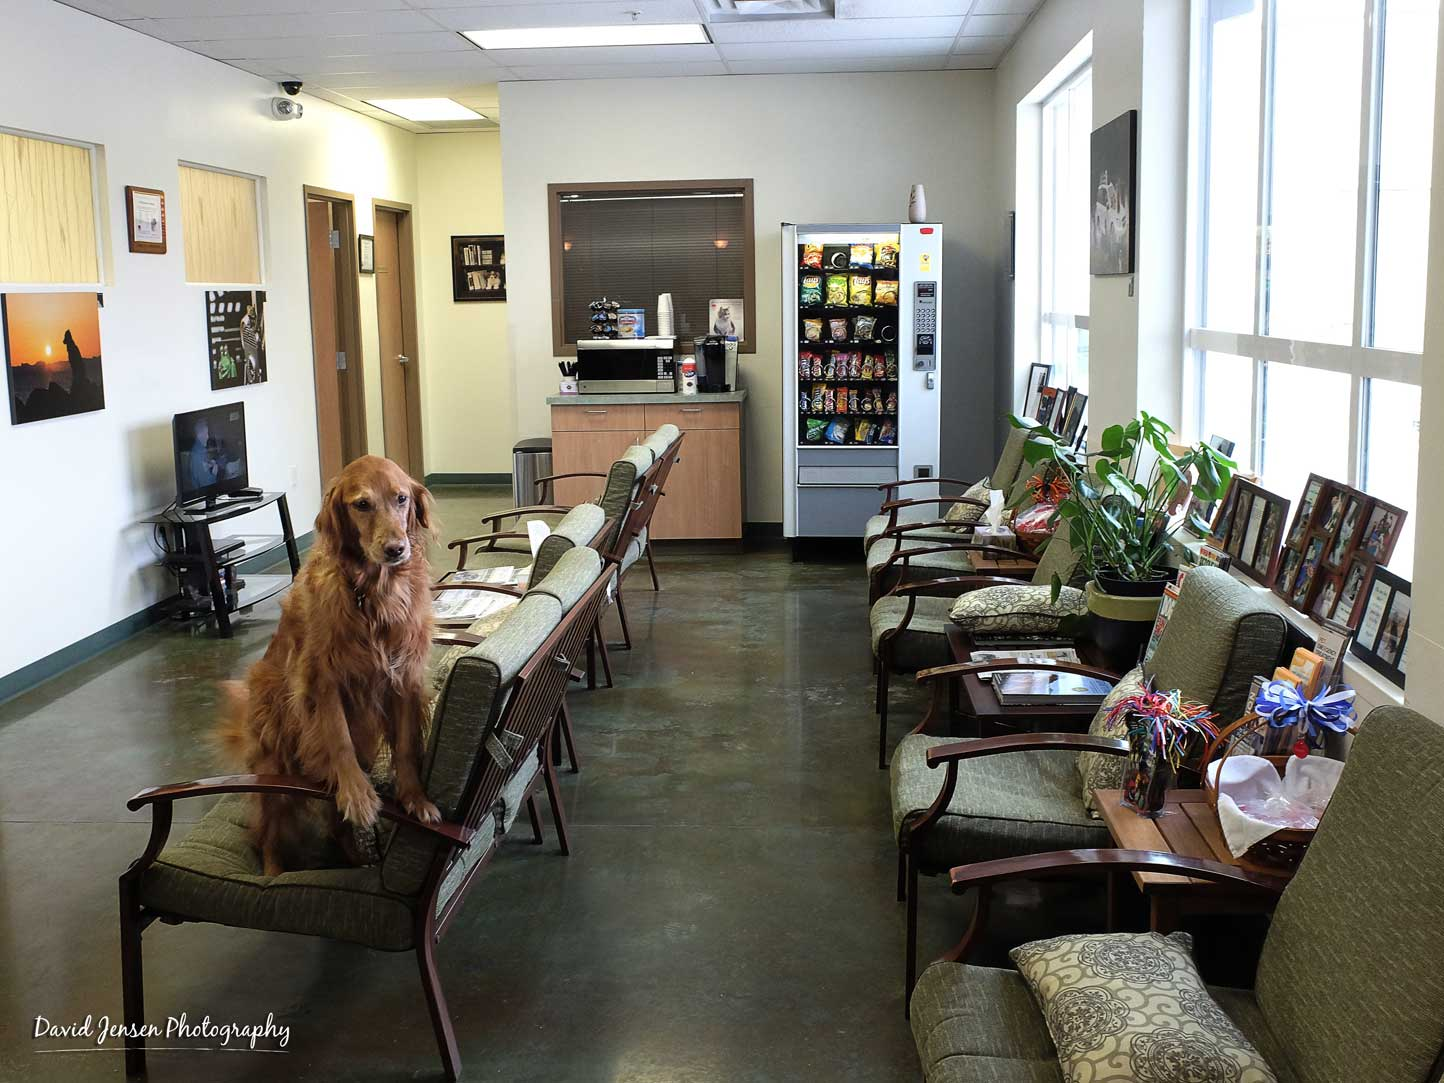 """Layla offers her """"pose of approval"""" at Pet Emergency & Treatment Center after work was completed on the studio's latest art exhibition installation."""